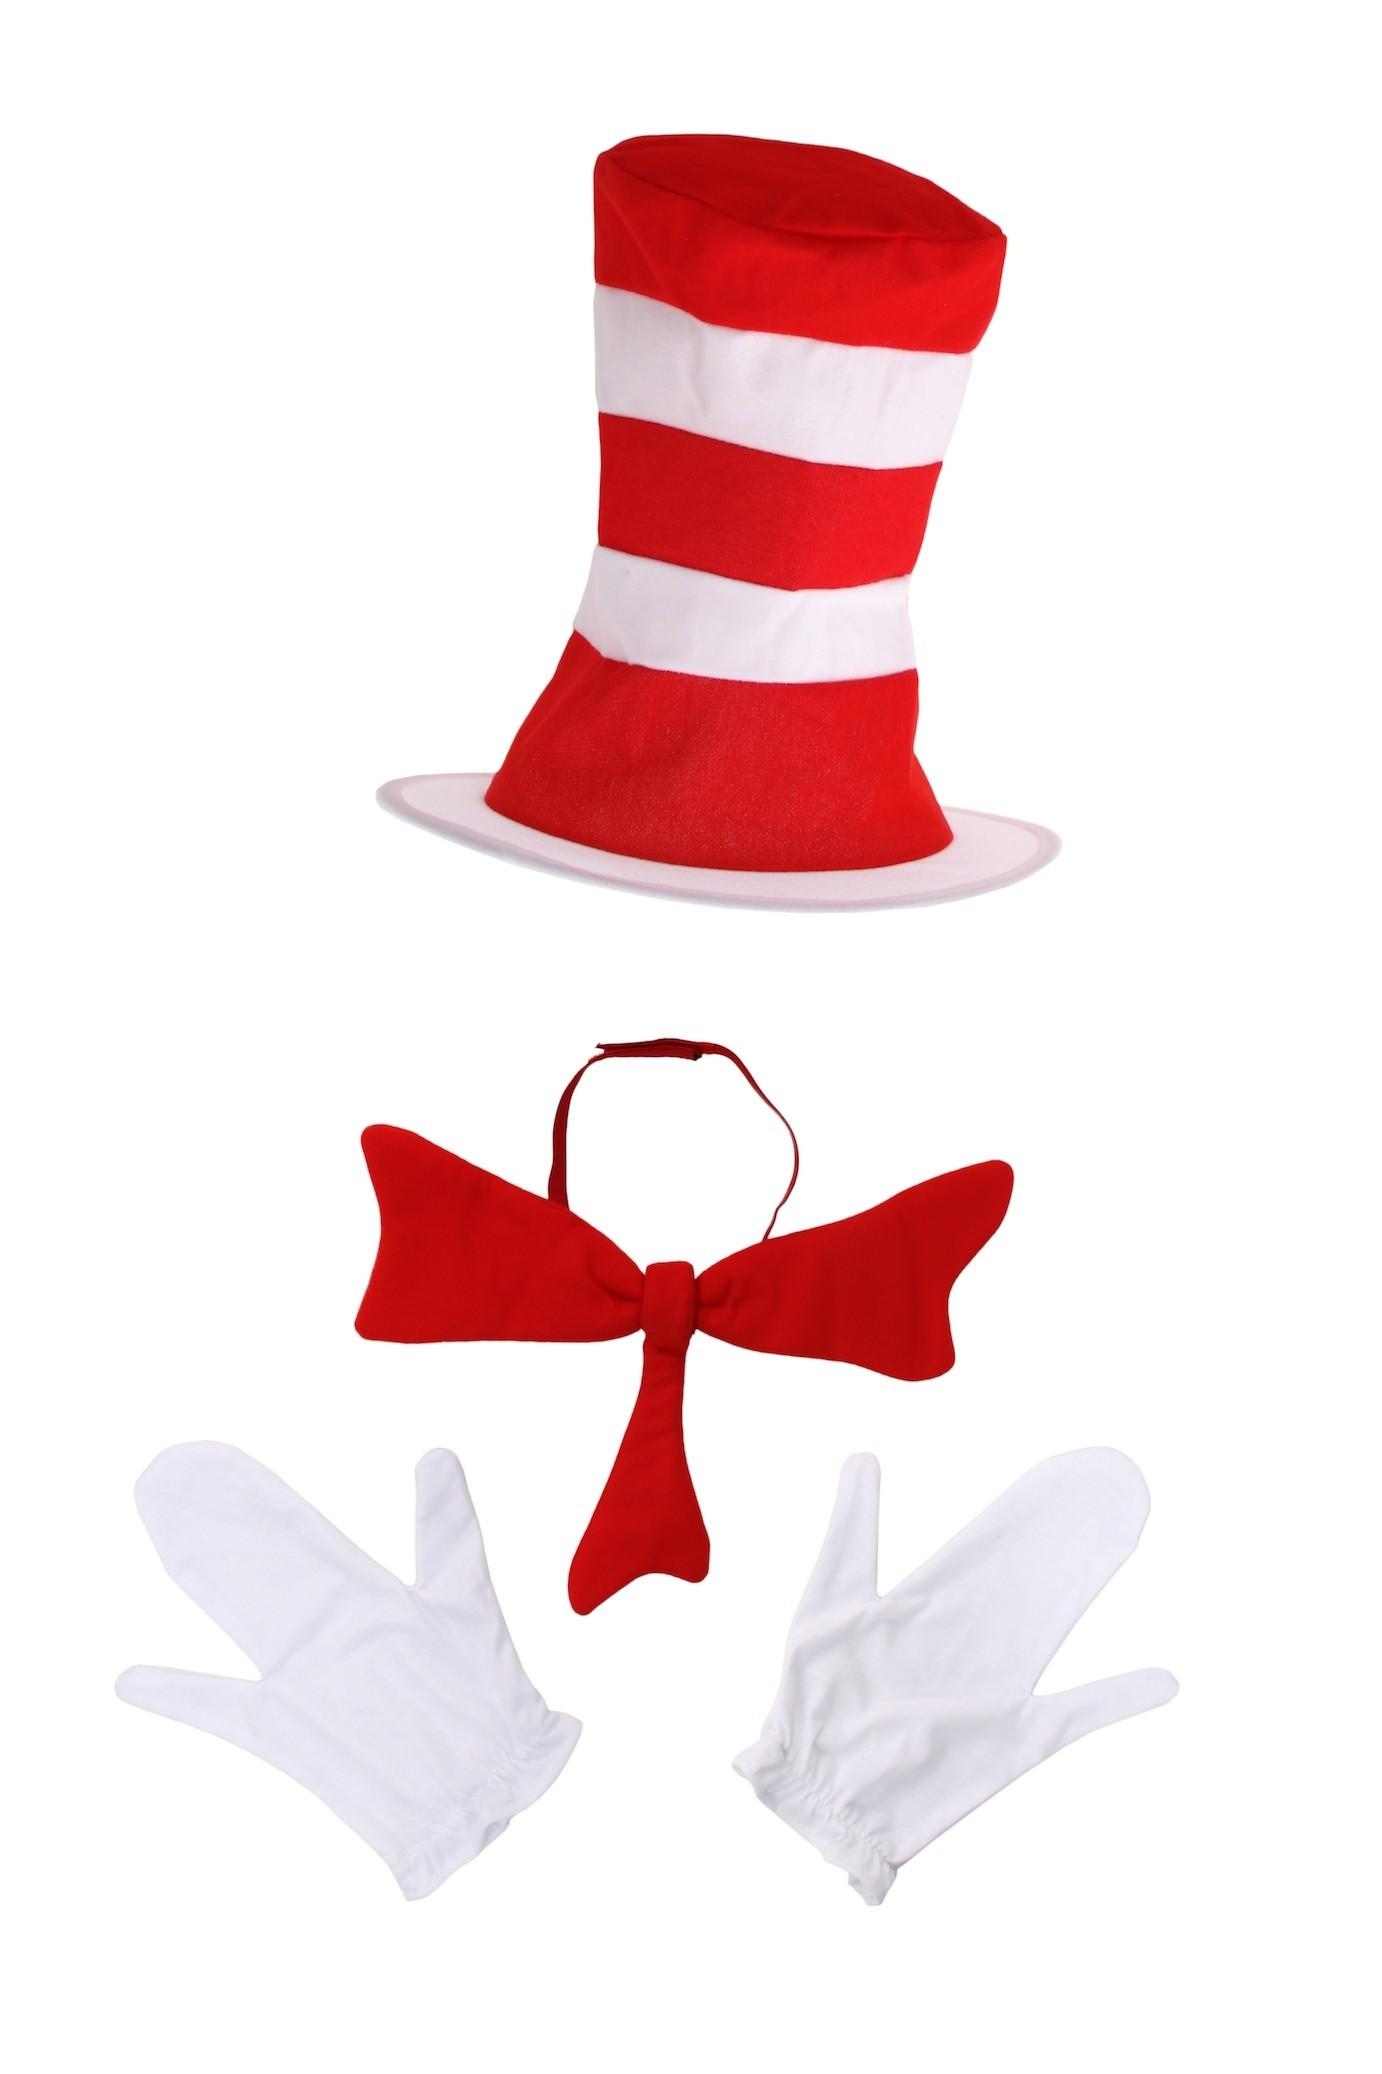 Costume or Dress up red mini top hat 2197